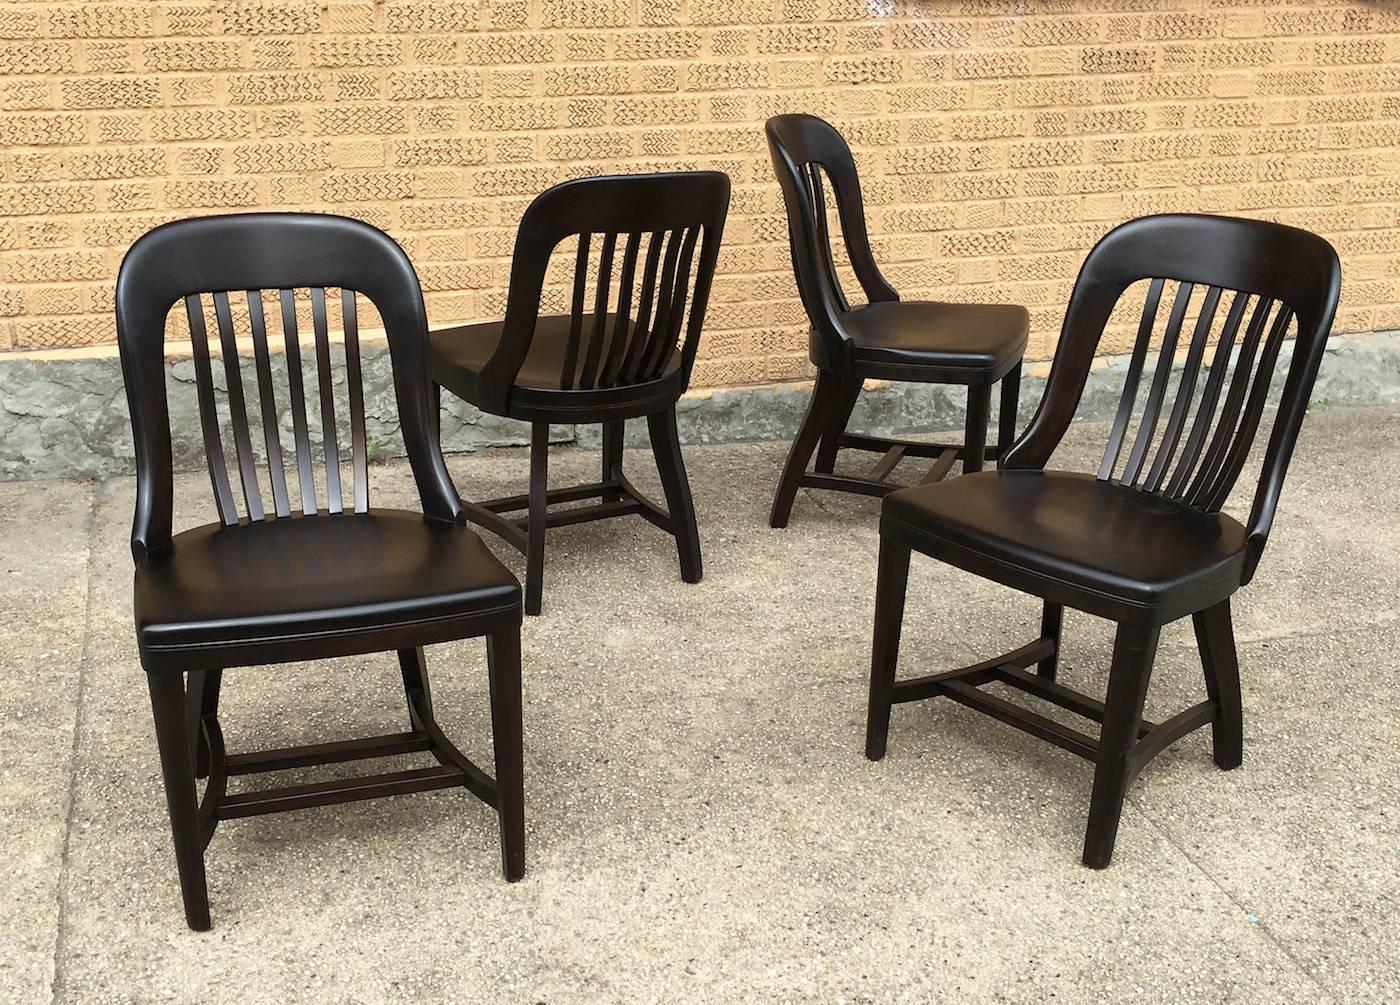 How to Identify Upholstered Vintage & Antique Chairs